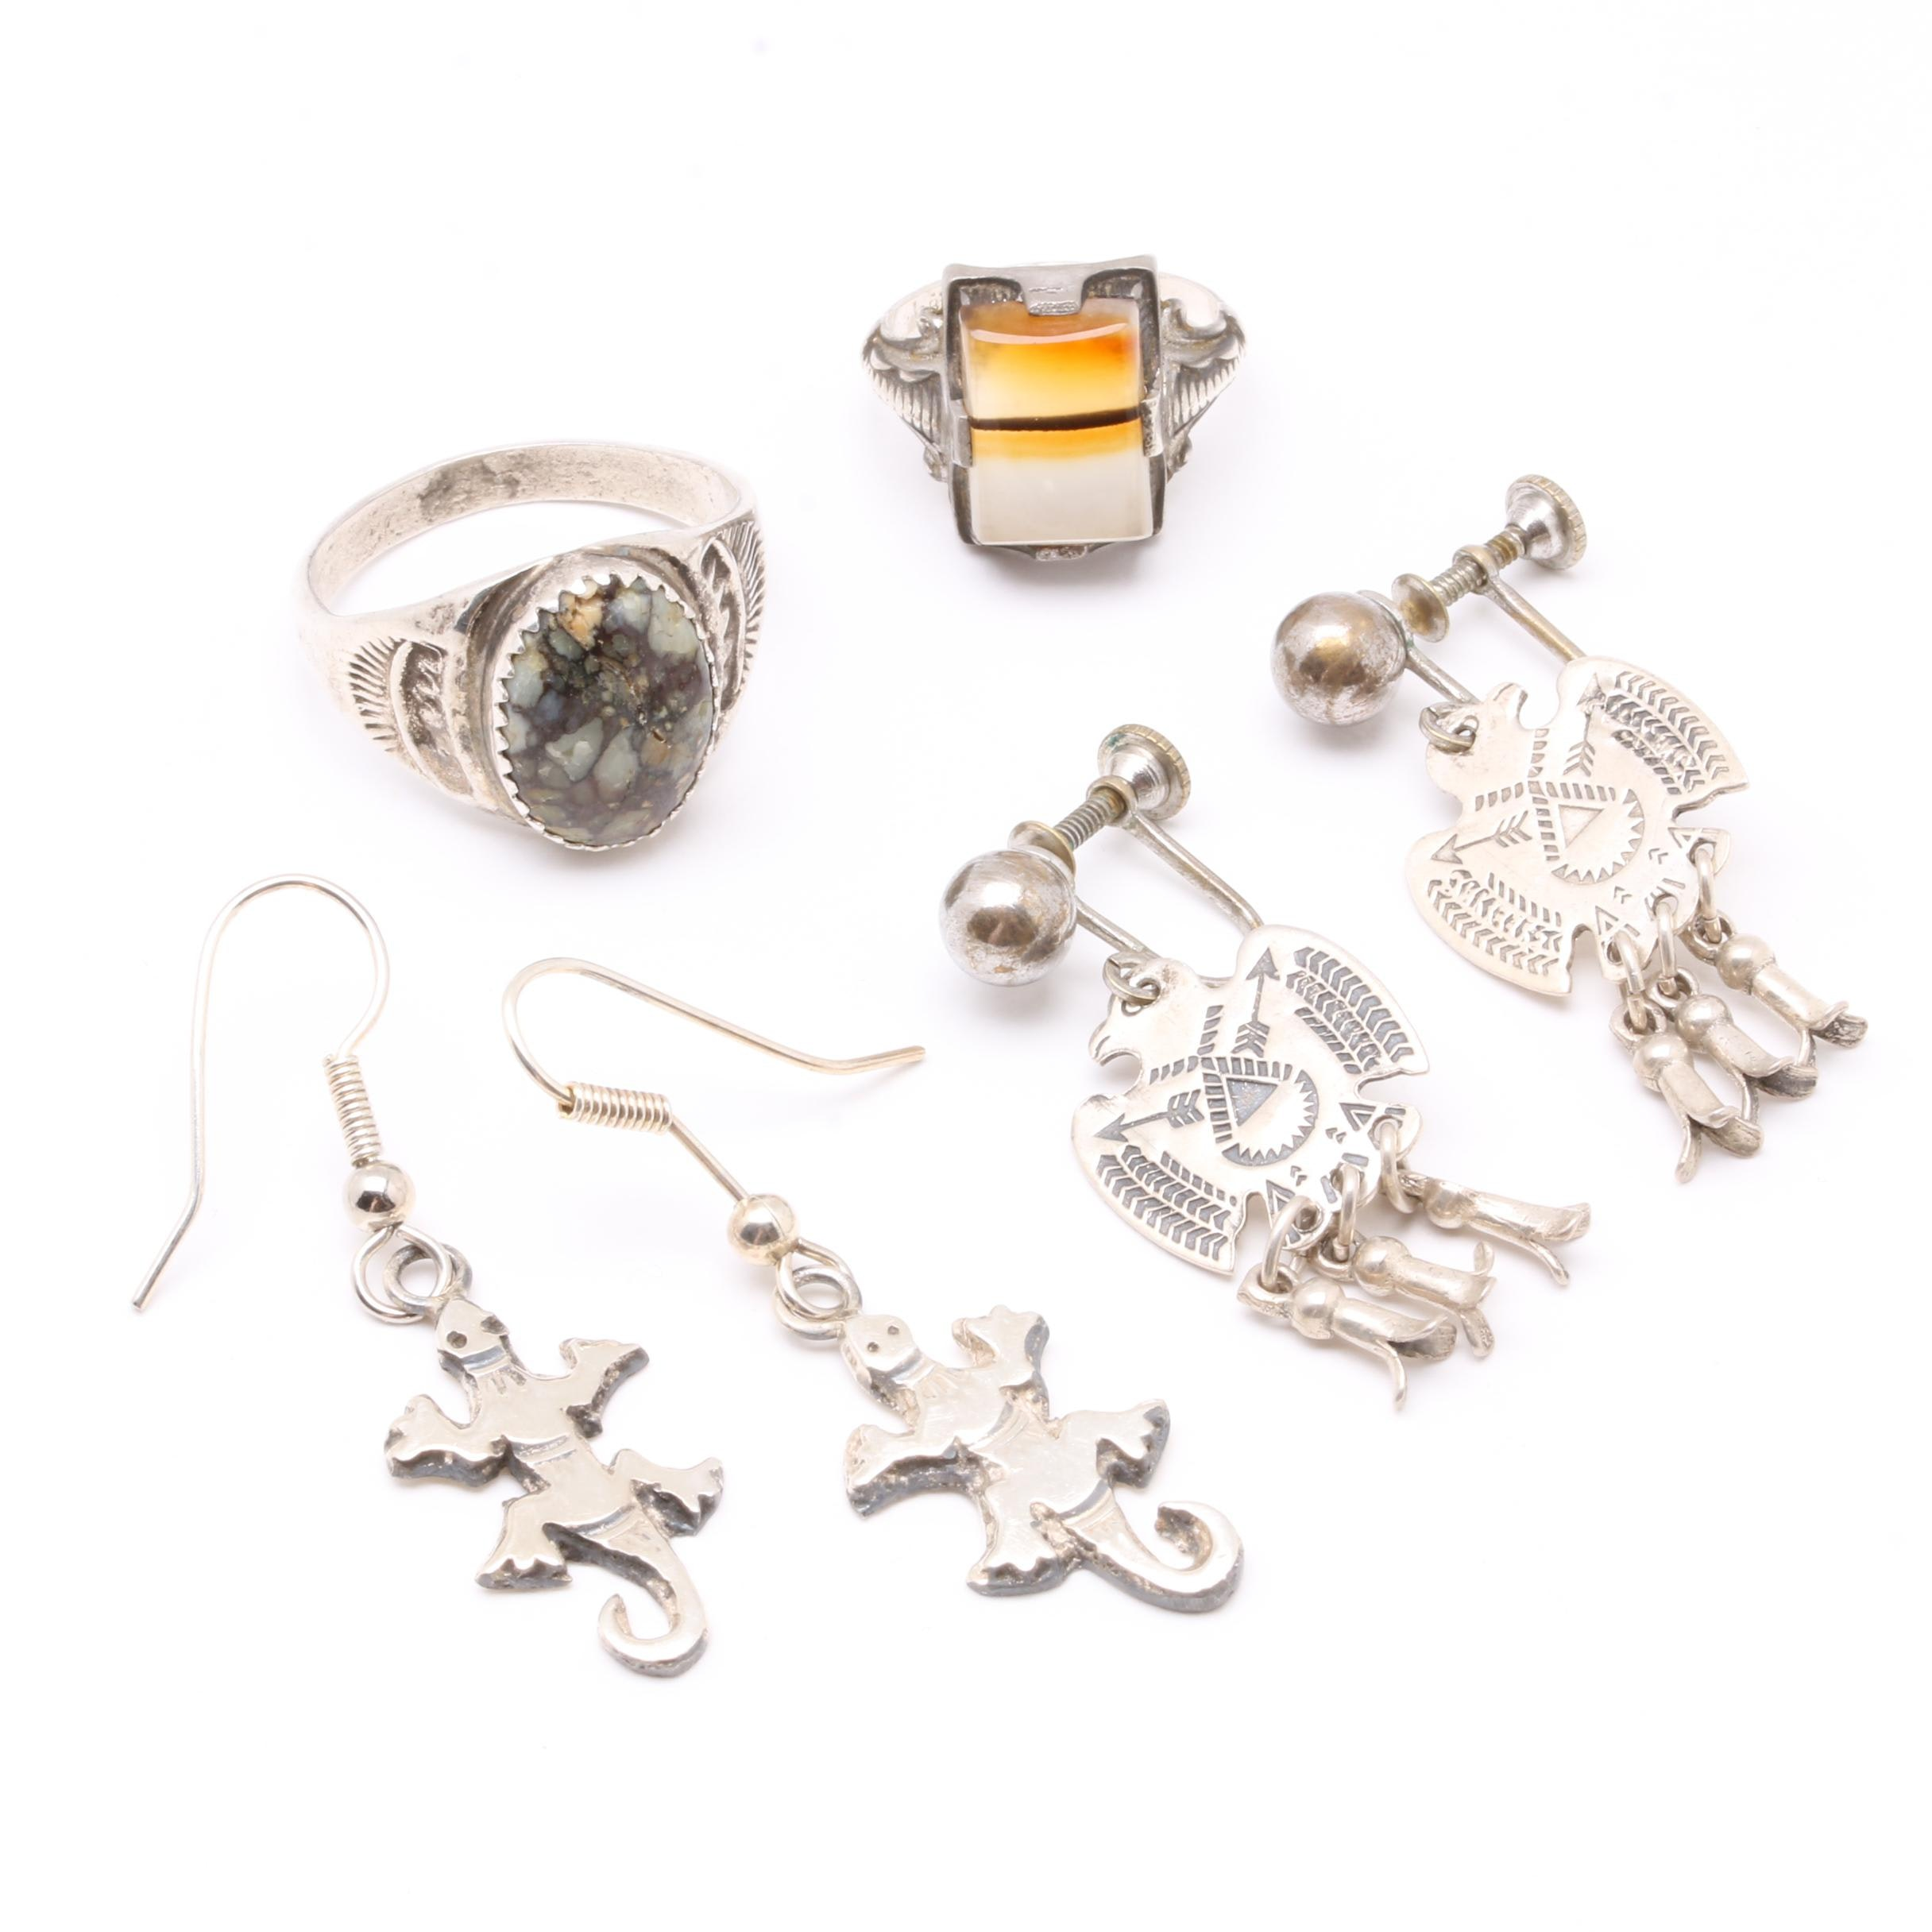 Southwest Style Sterling Silver Jewelry Selection Including Agate